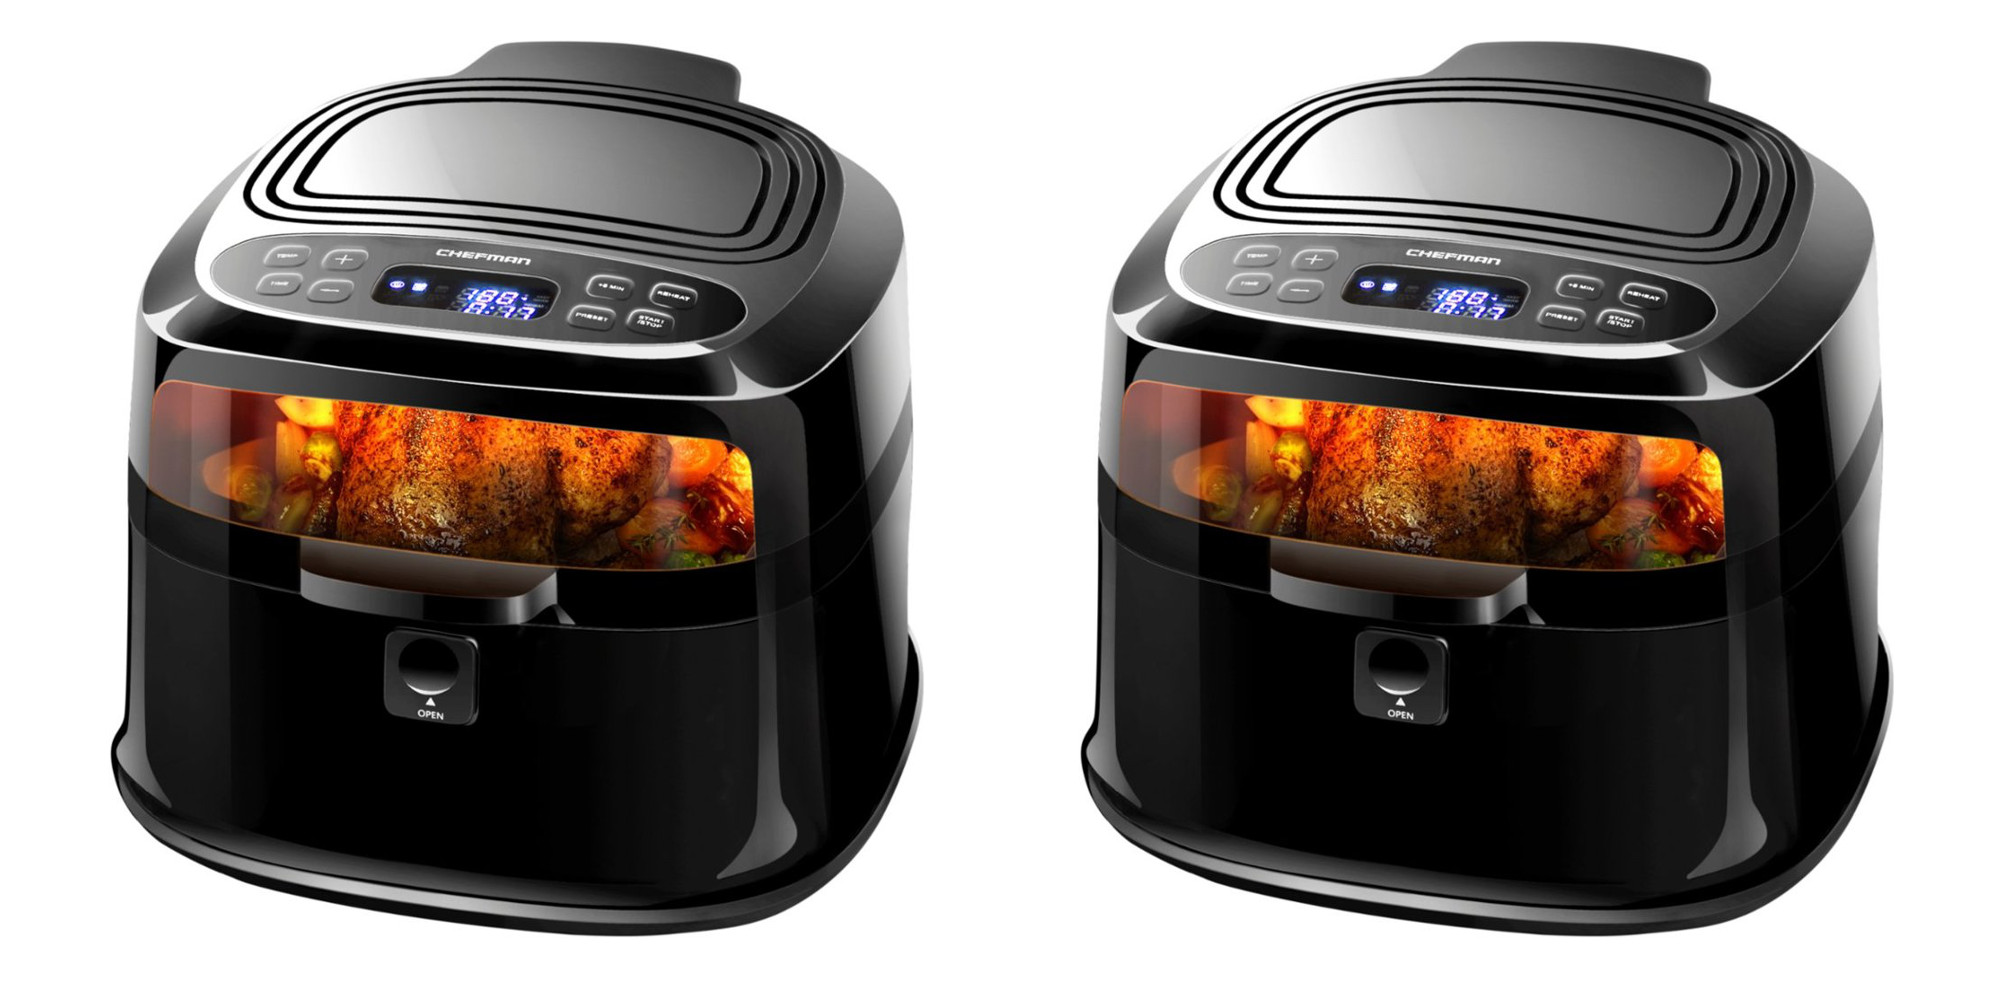 Chefman Toaster Oven Air Fryer Best Buy All About Image Hd